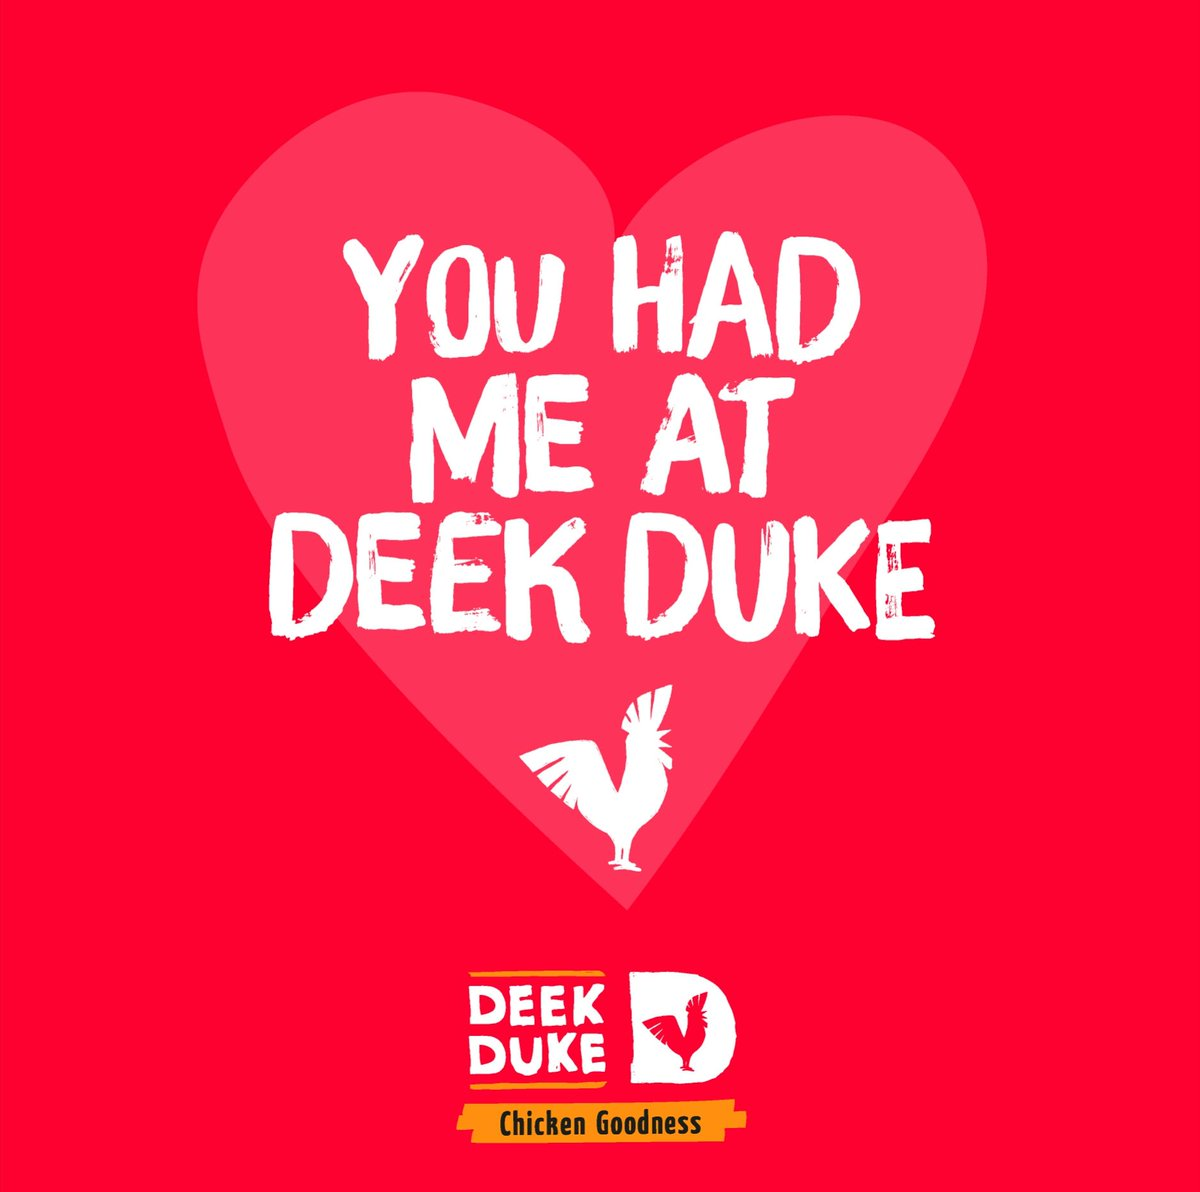 That's how Dukeaholics know it is #TrueLove! Rt &Tag your Valentine and you may win some #ChickenGoodness! https://t.co/8jg1UuAace